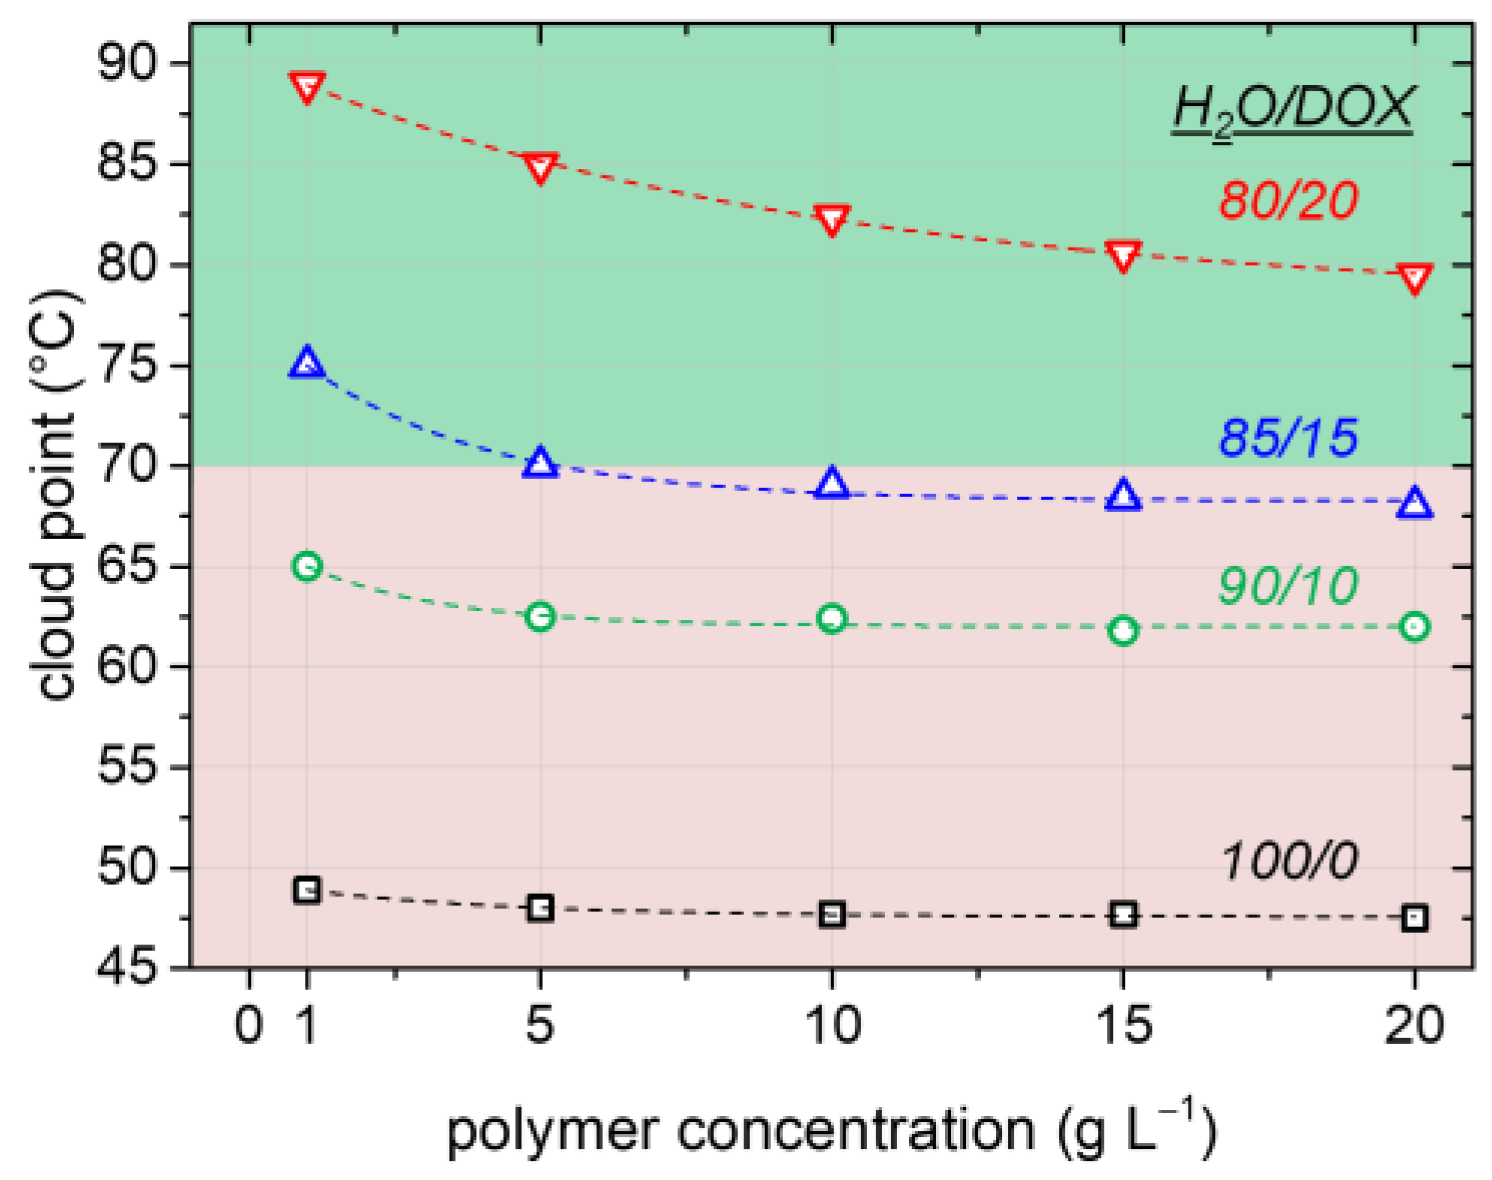 emulsion polymerization of styrene In order to evaluate the fabrication of photonic crystals thin film, a free-emulsifier  emulsion copolymerization of styrene and methyl methacrylate.